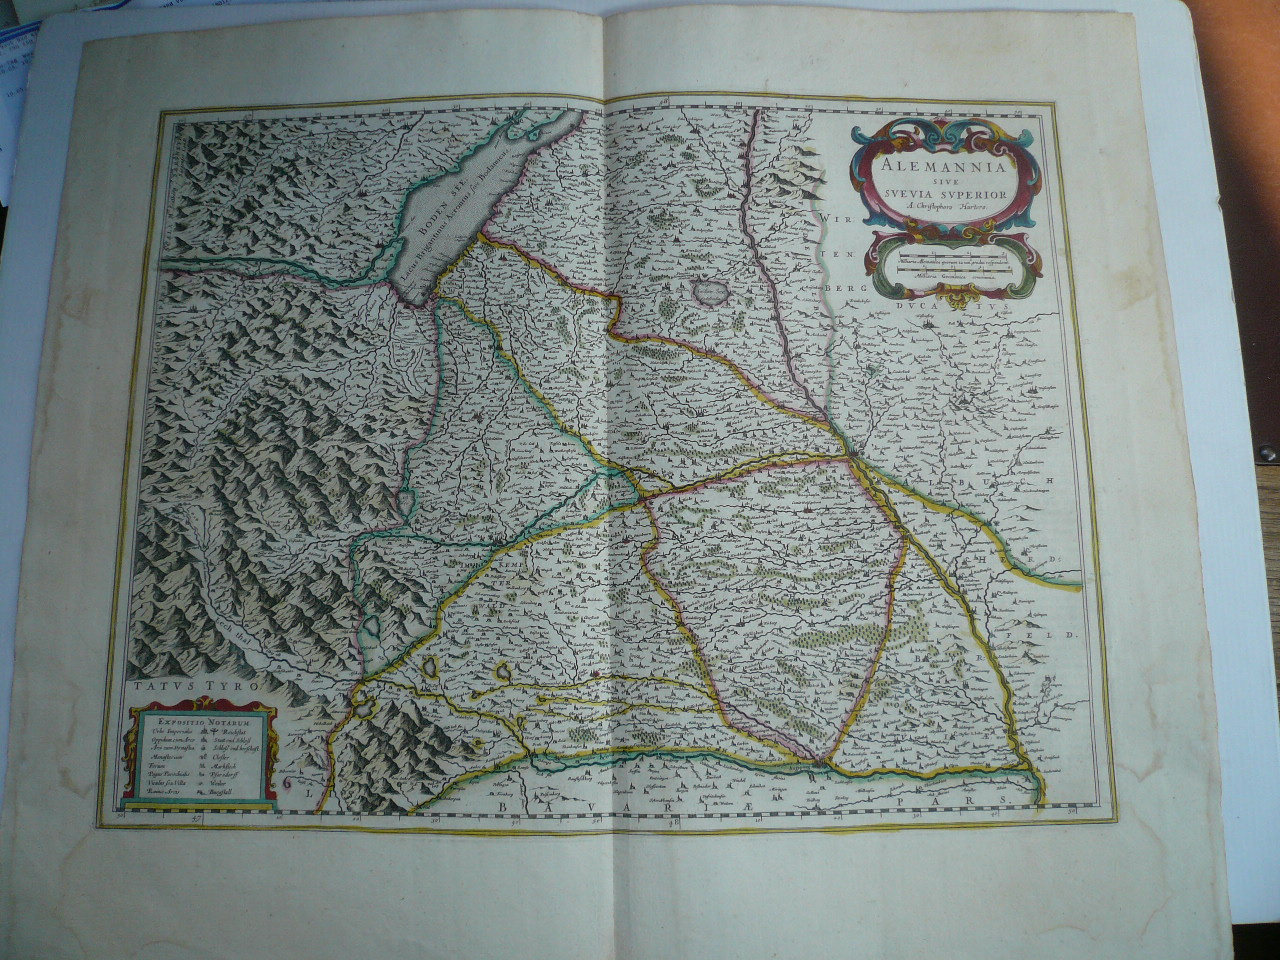 La Suevie, Blaeu, anno 1642, Karte Nouvel Atlas